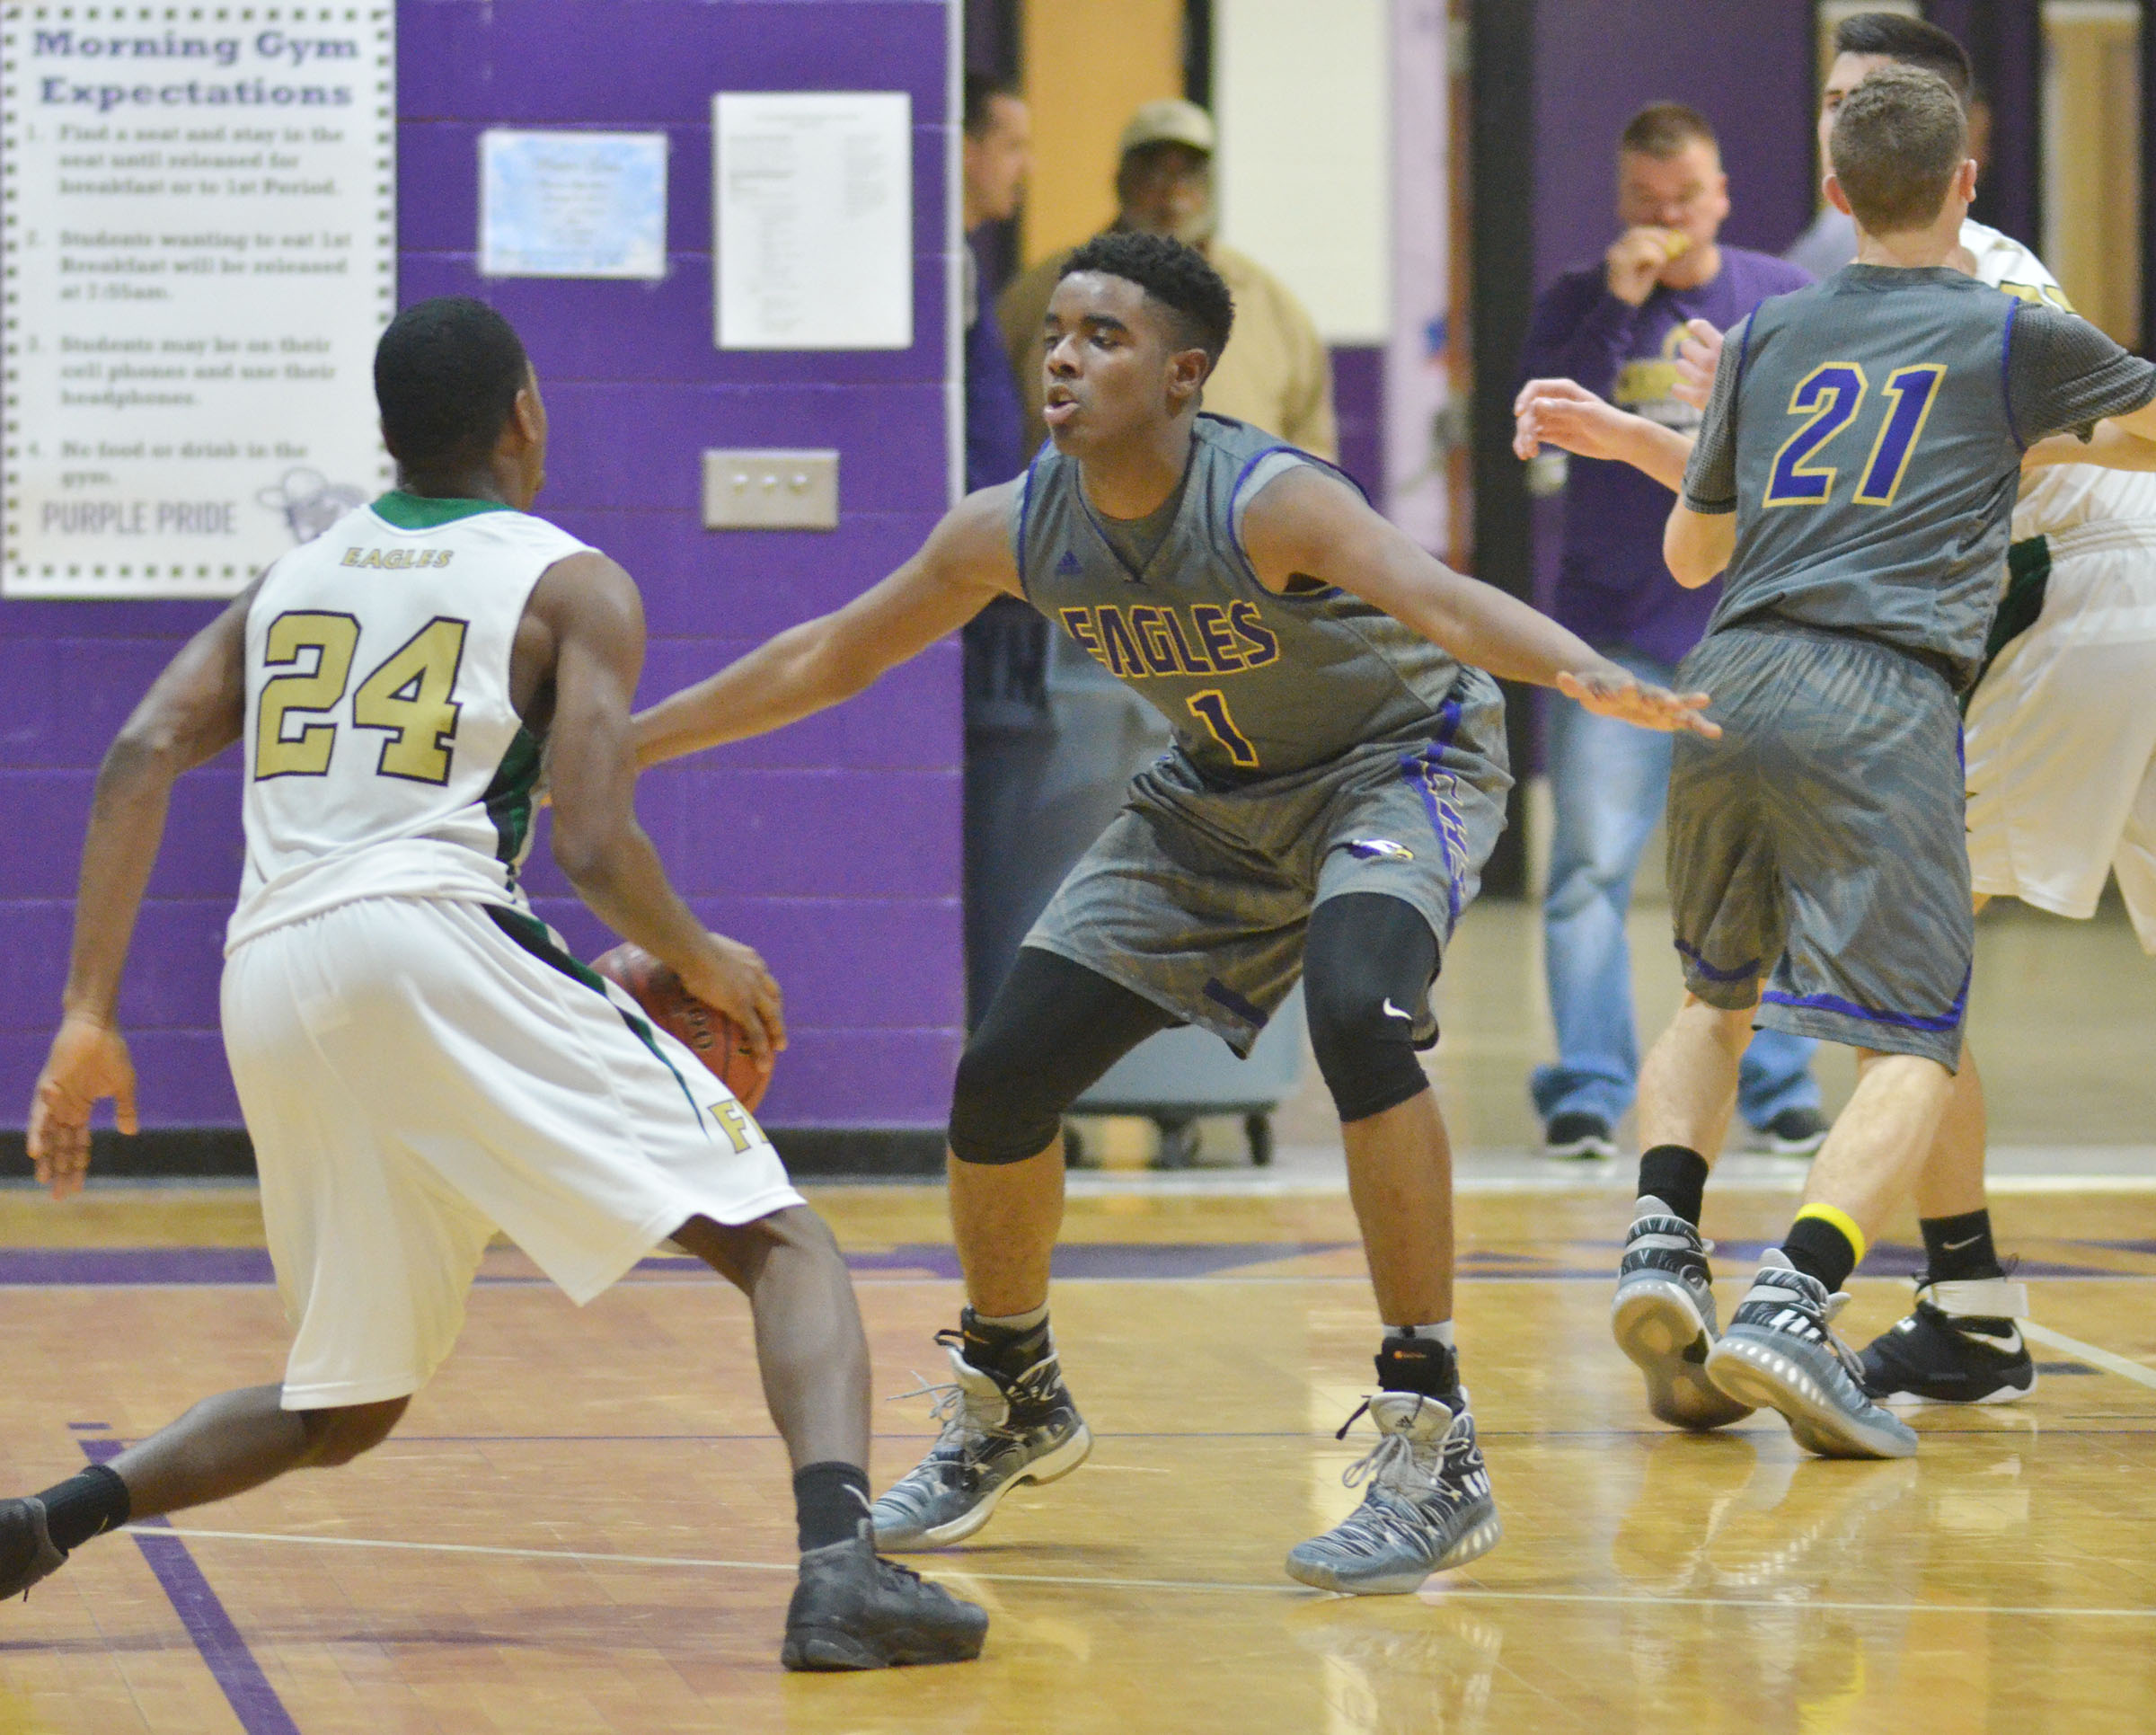 CHS junior Chanson Atkinson plays defense.